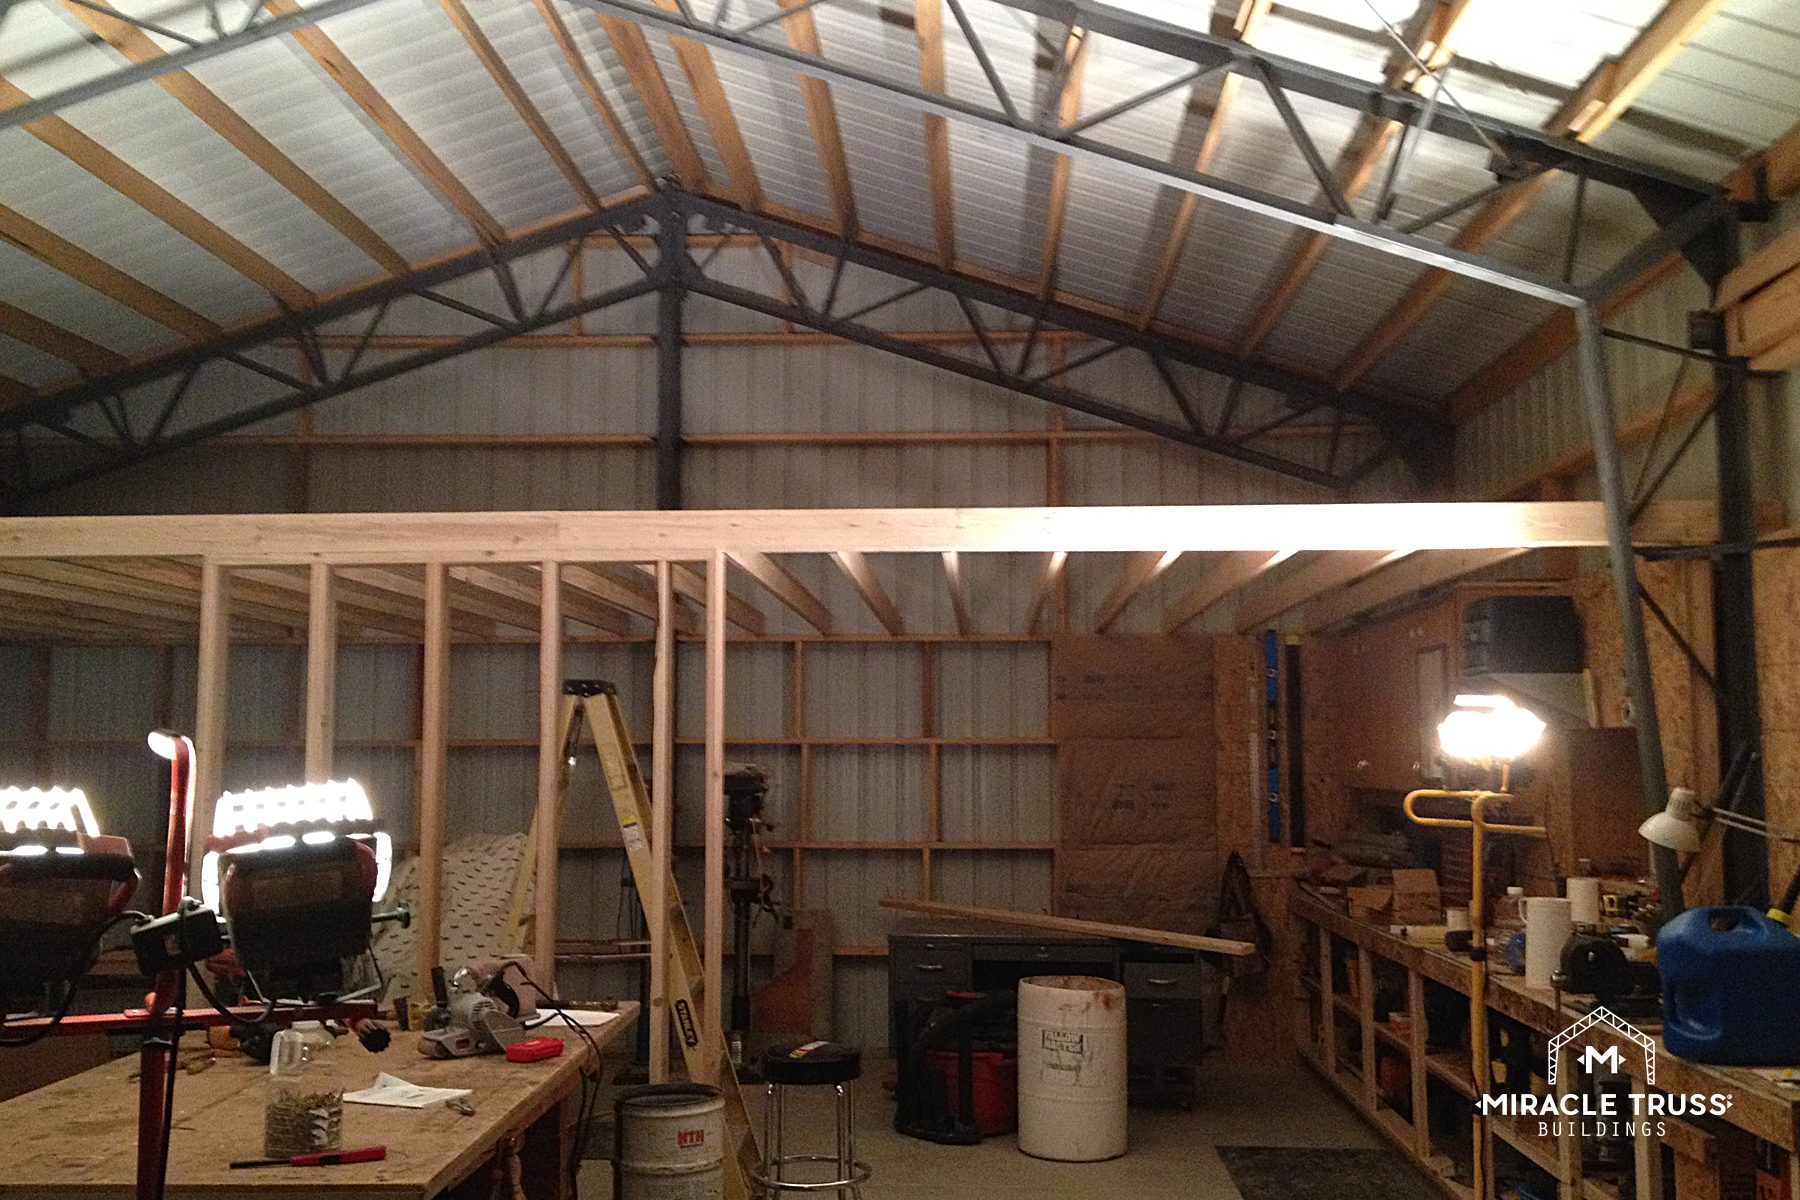 Easy assemble diy metal garage or shop miracle truss, 20 x 38 house plans